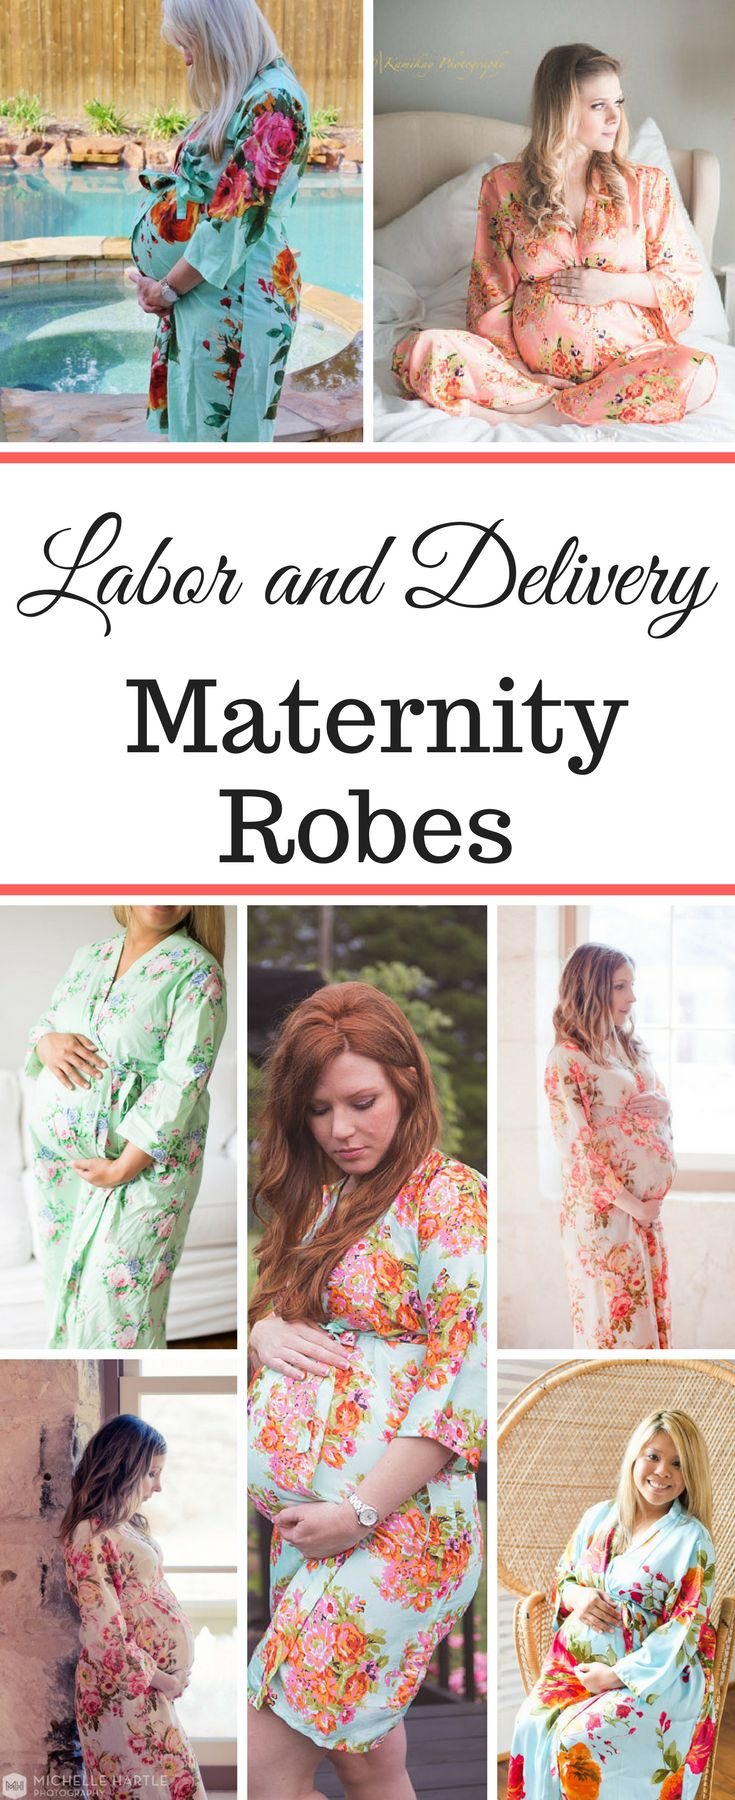 These maternity robes are so pretty and look so comfy! I'd much rather be in this at the hospital! Labor Gowns | Delivery Gowns | Hospital Gowns | Nursing Gowns | Feeding Gowns | Maternity Gowns #ad #maternity #maternitystyle #maternityfashion #maternityphotography #maternityclothes #hospital #labor #delivery #nursing #breastfeeding #gowns #expecting #momtobe #giftideas #giftsforher #giftsformom